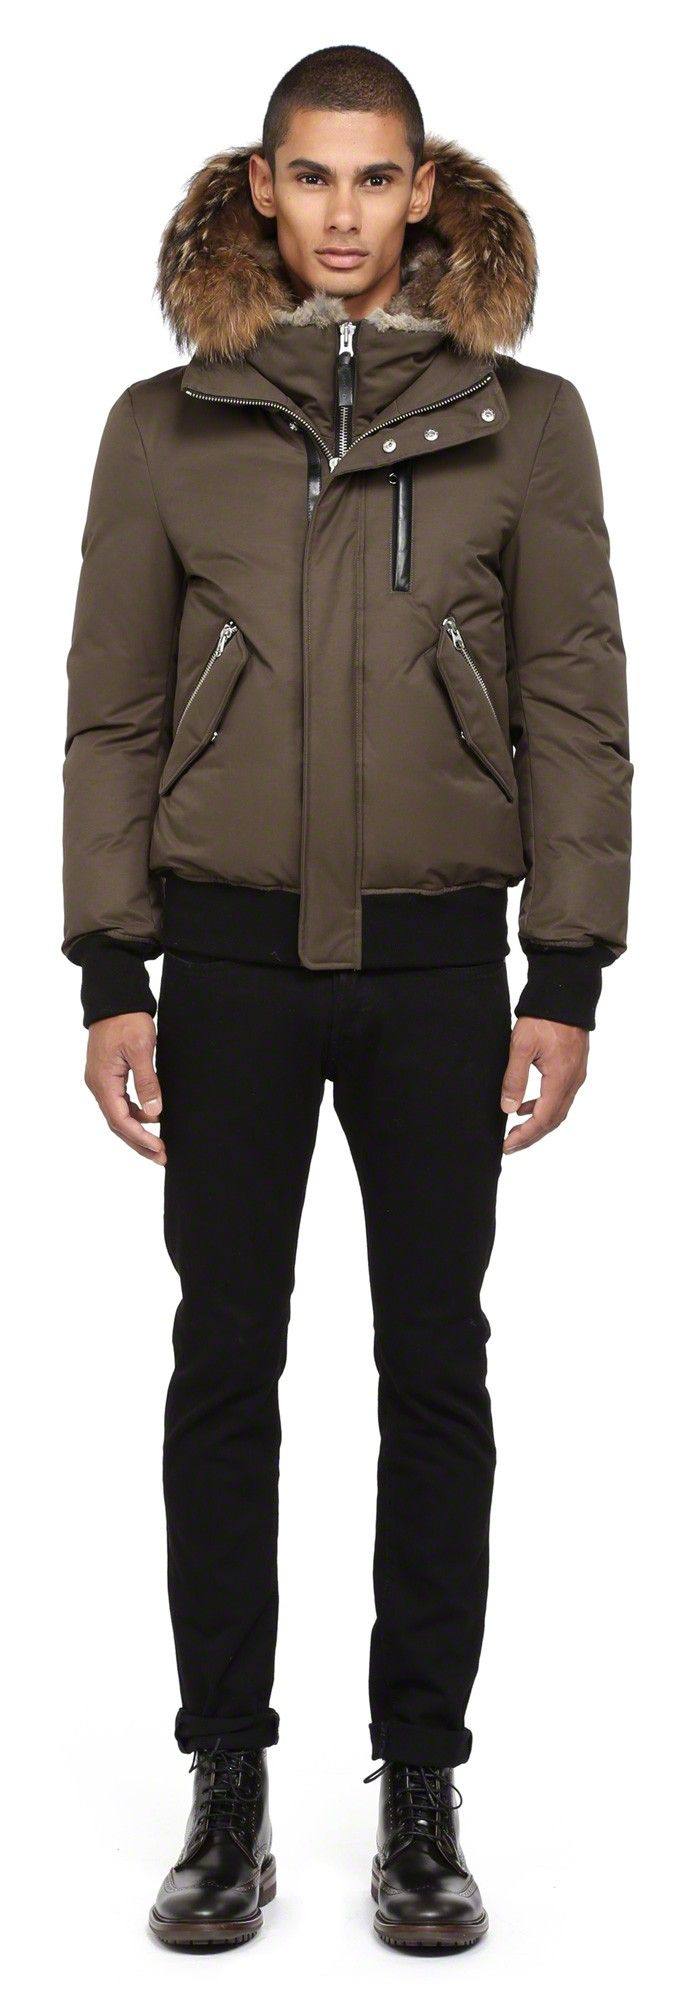 Mackage DIXONF4 ARMY WINTER DOWN BOMBER JACKET FOR MEN